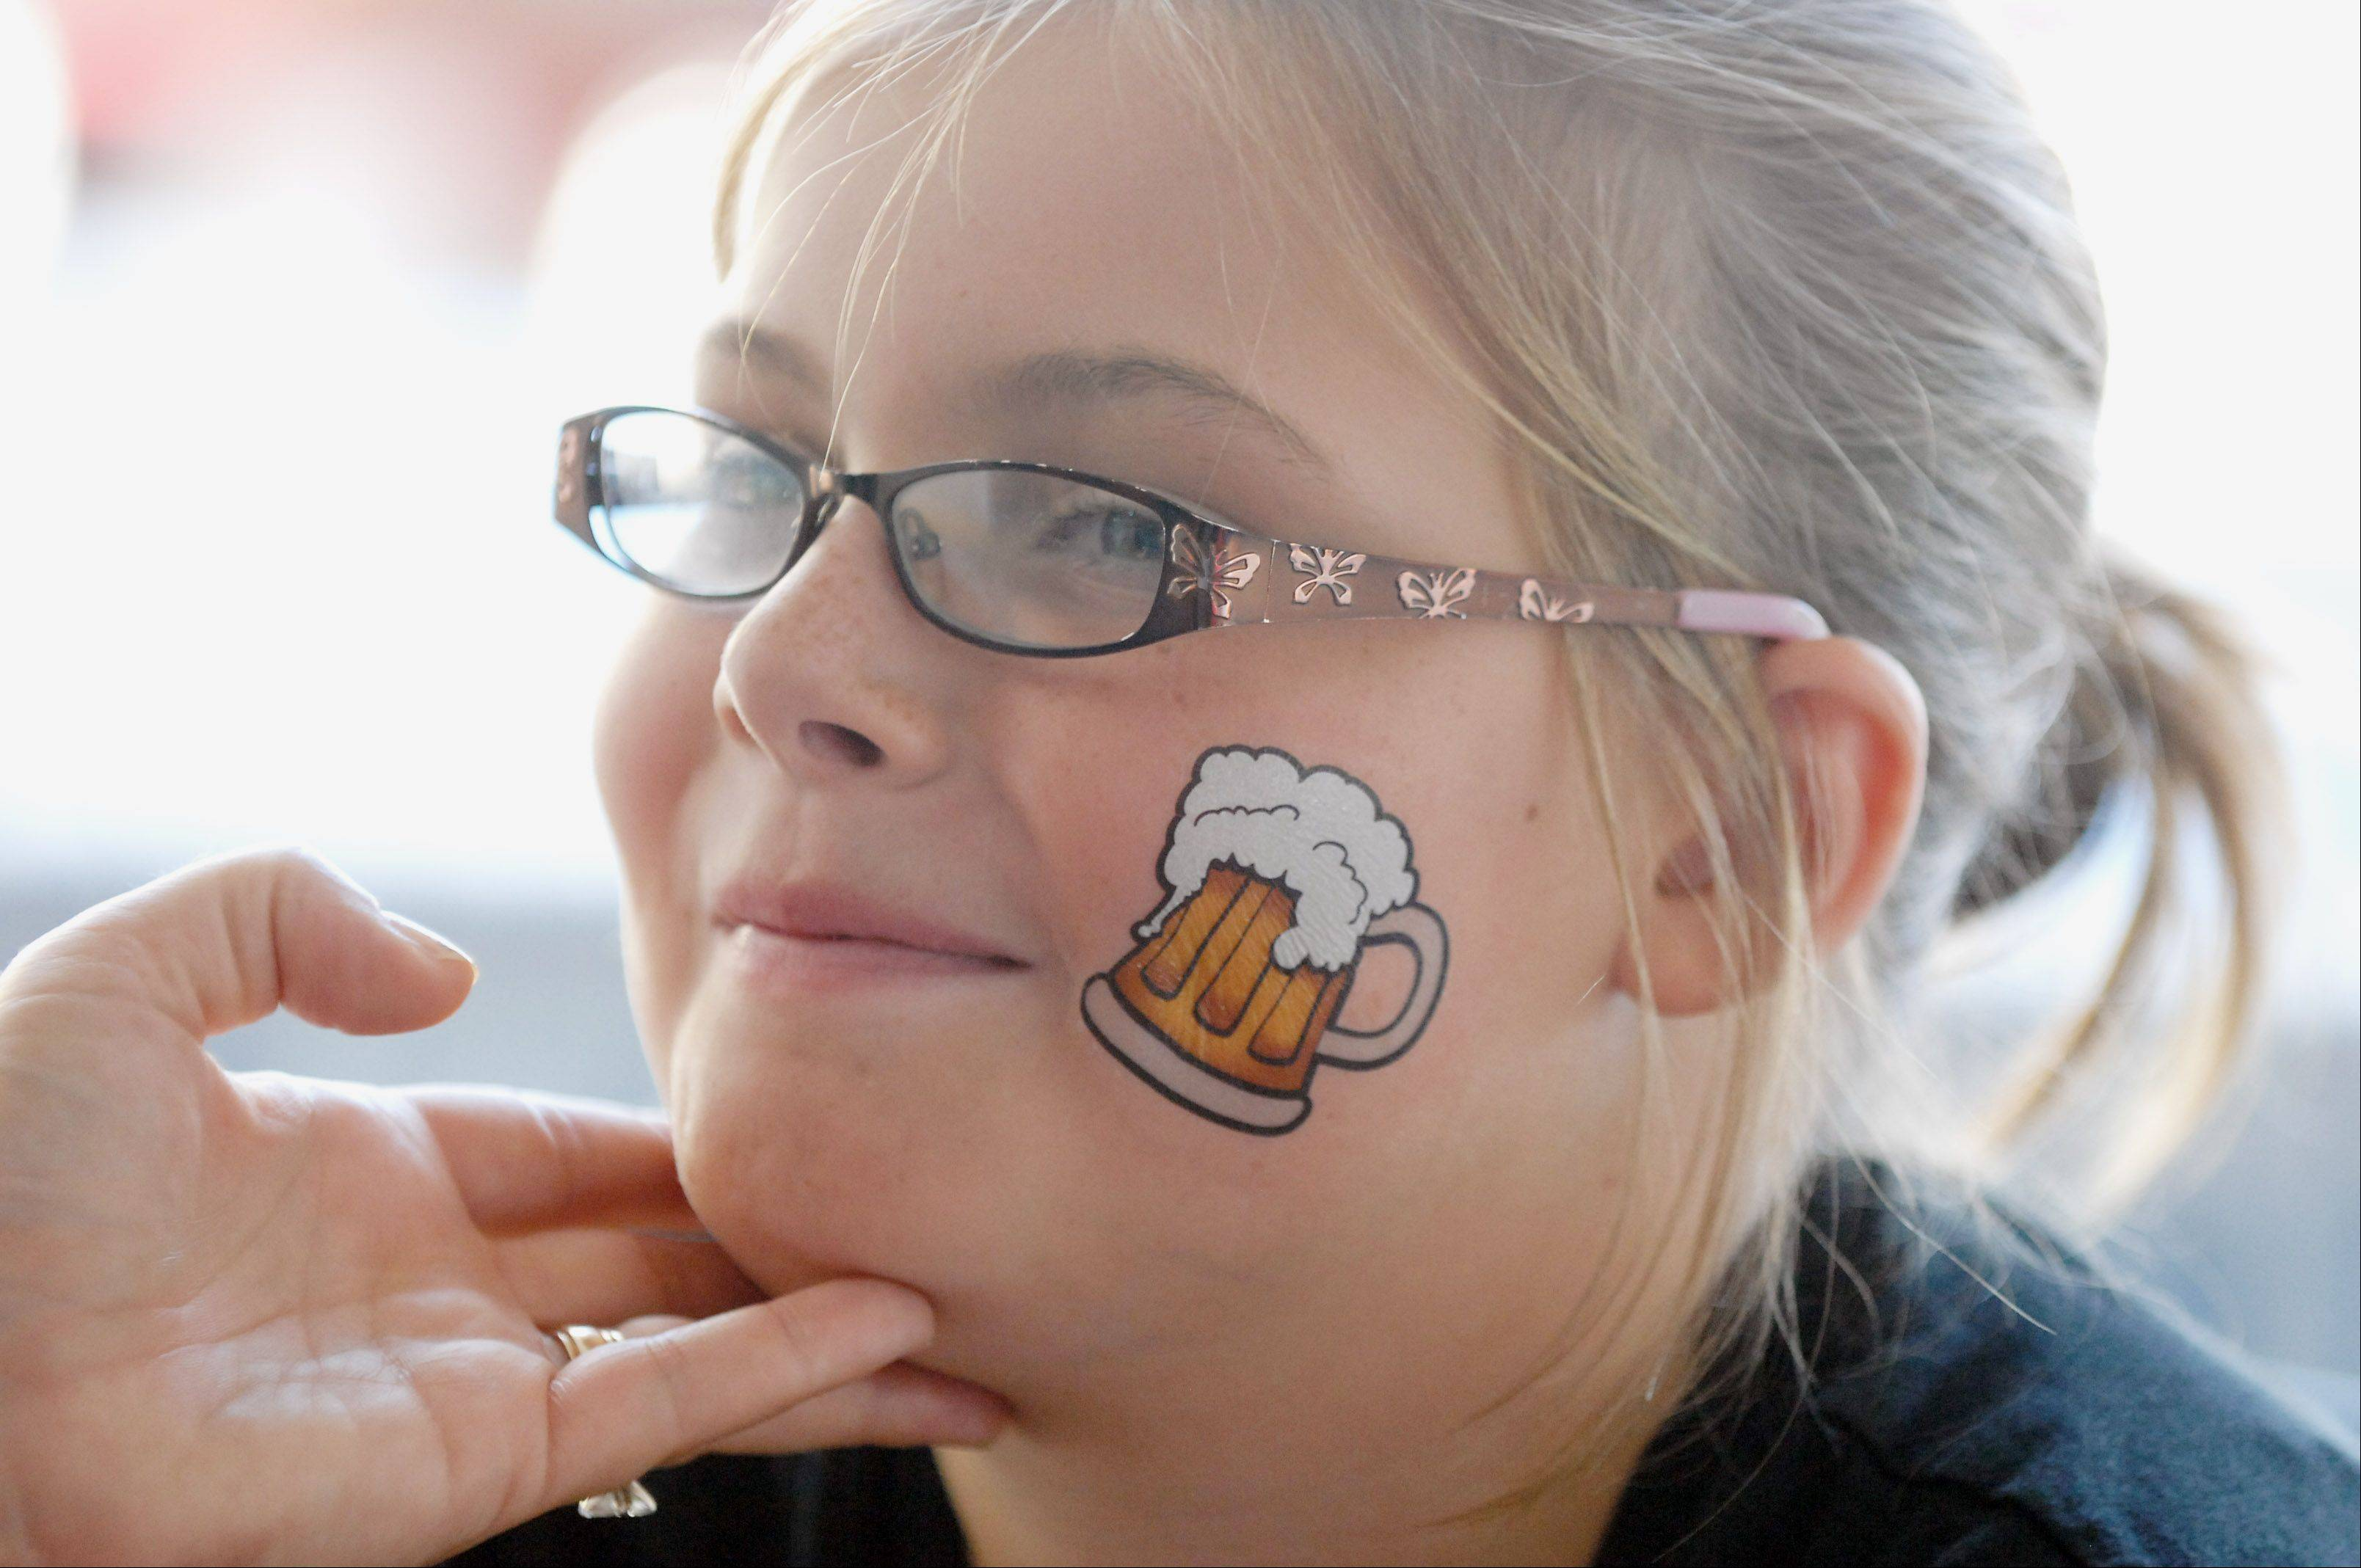 Molly Leno, 9, of Arlington Heights sports a beer tattoo during Oktoberfest in Itasca Saturday. The fest runs thorough Sunday and offers food, beer, and fun for all ages.